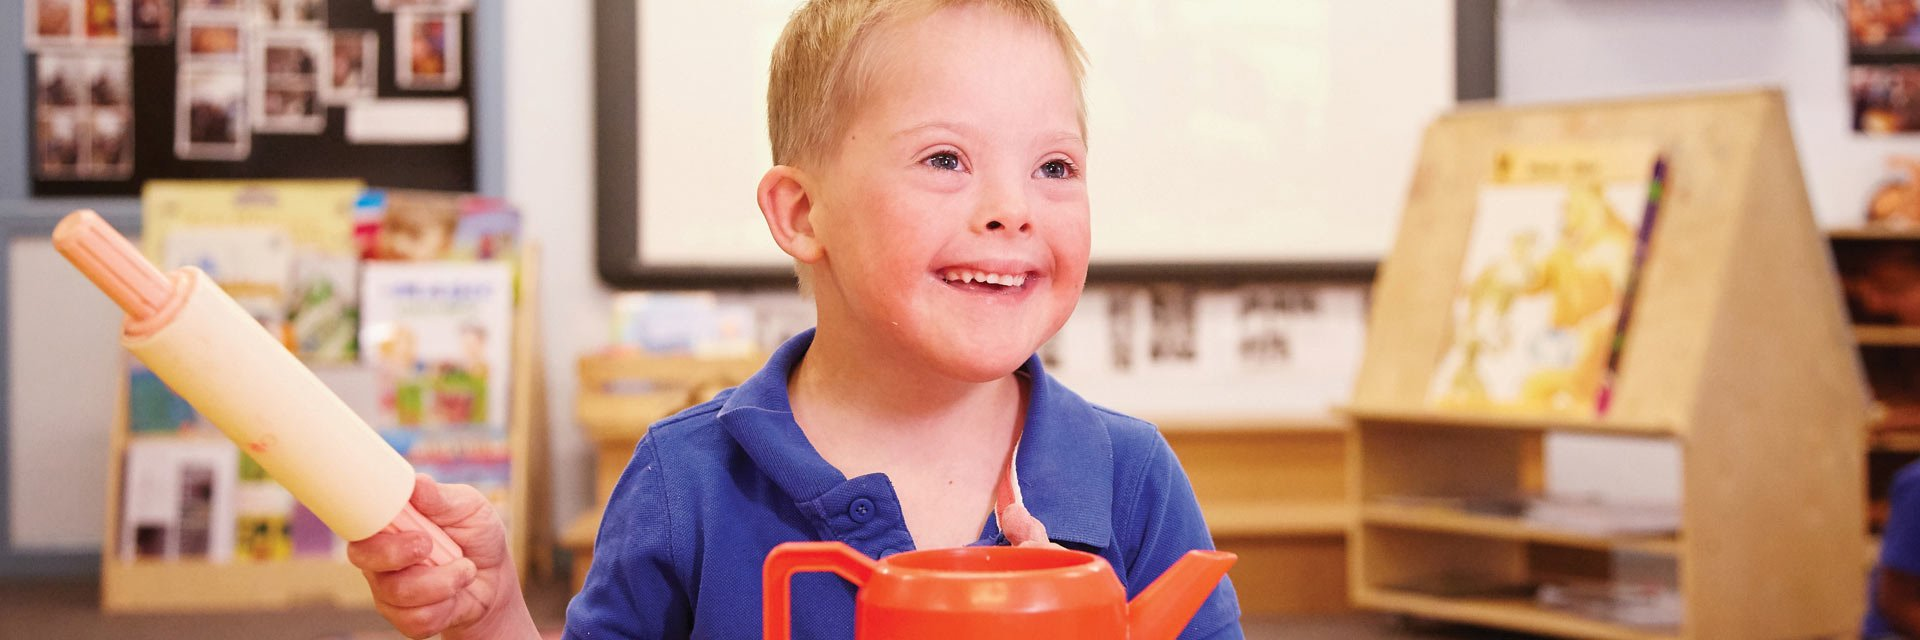 Boy with down syndrome in an early childhood intervention service